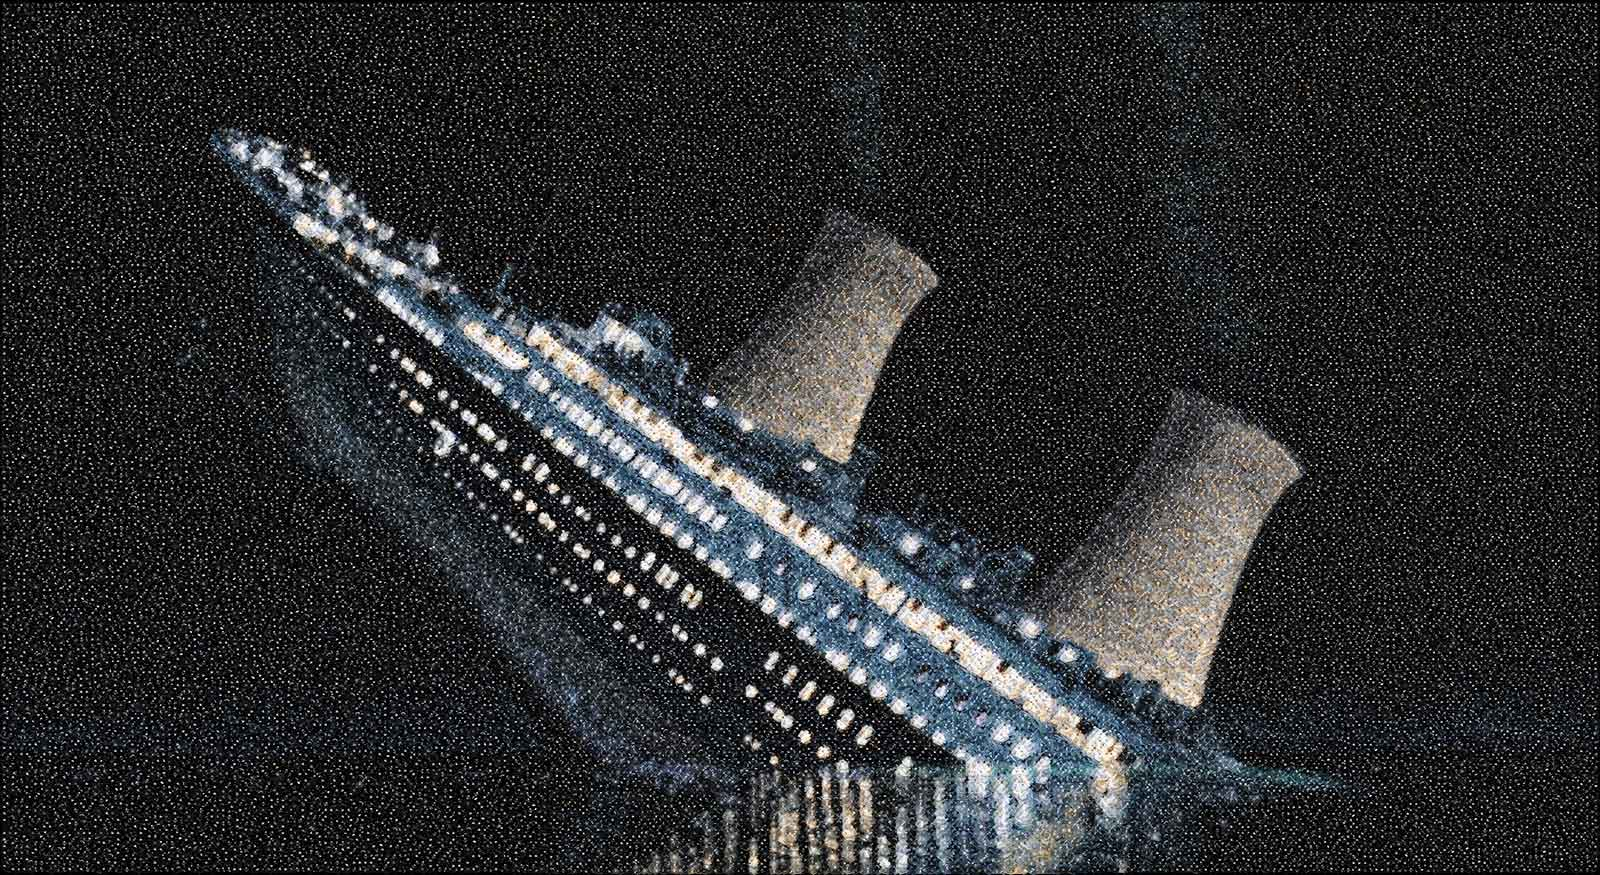 composite image of sinking ship